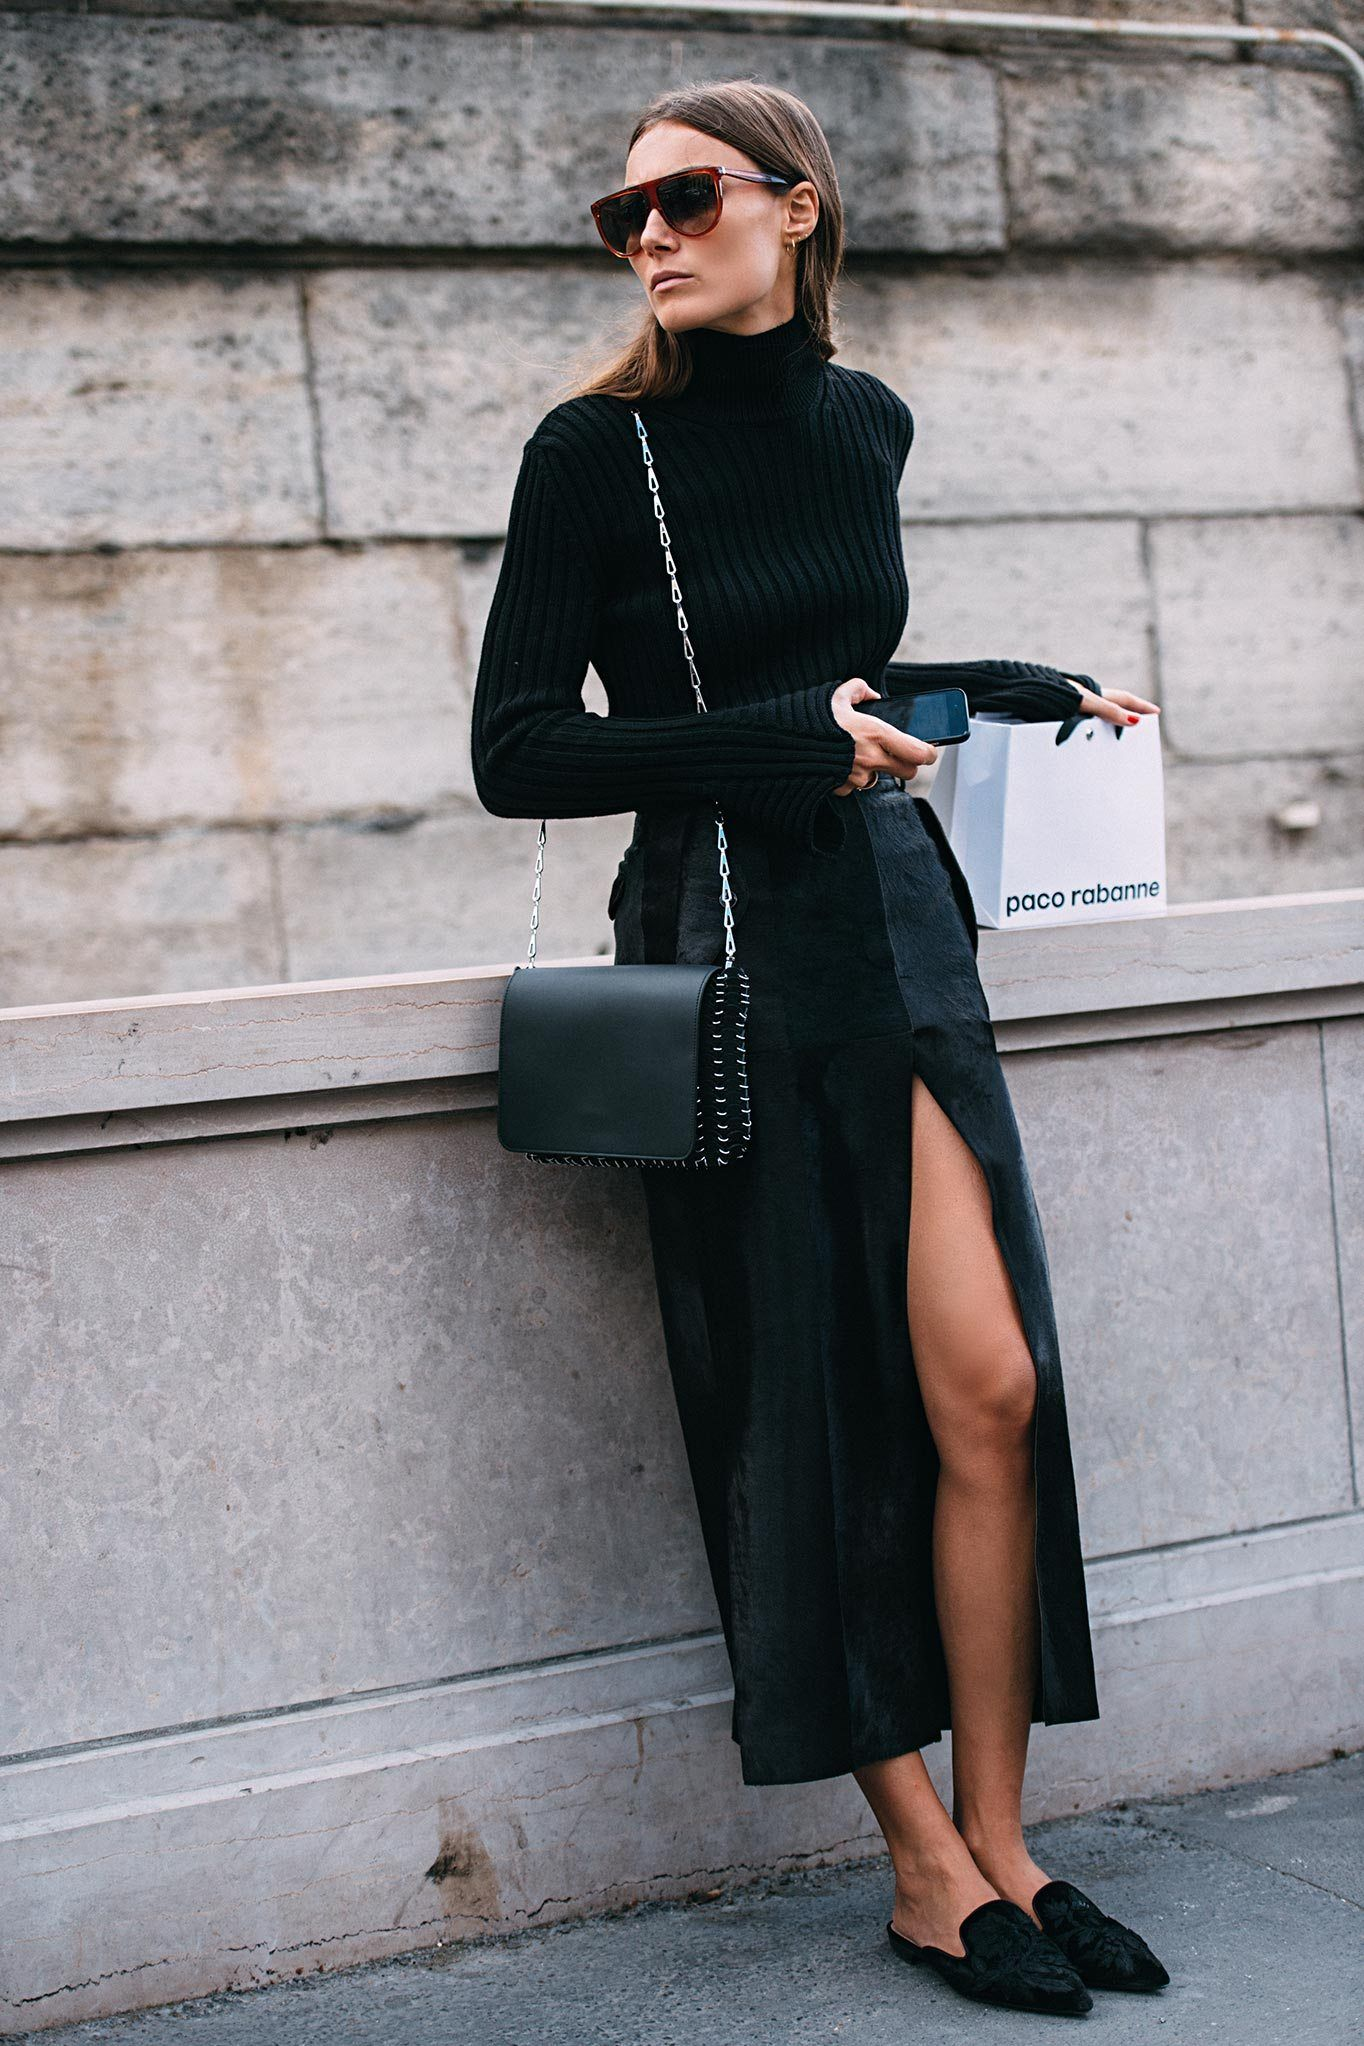 Fashion week Staycation Inspiration3 worthy outfit ideas for girls